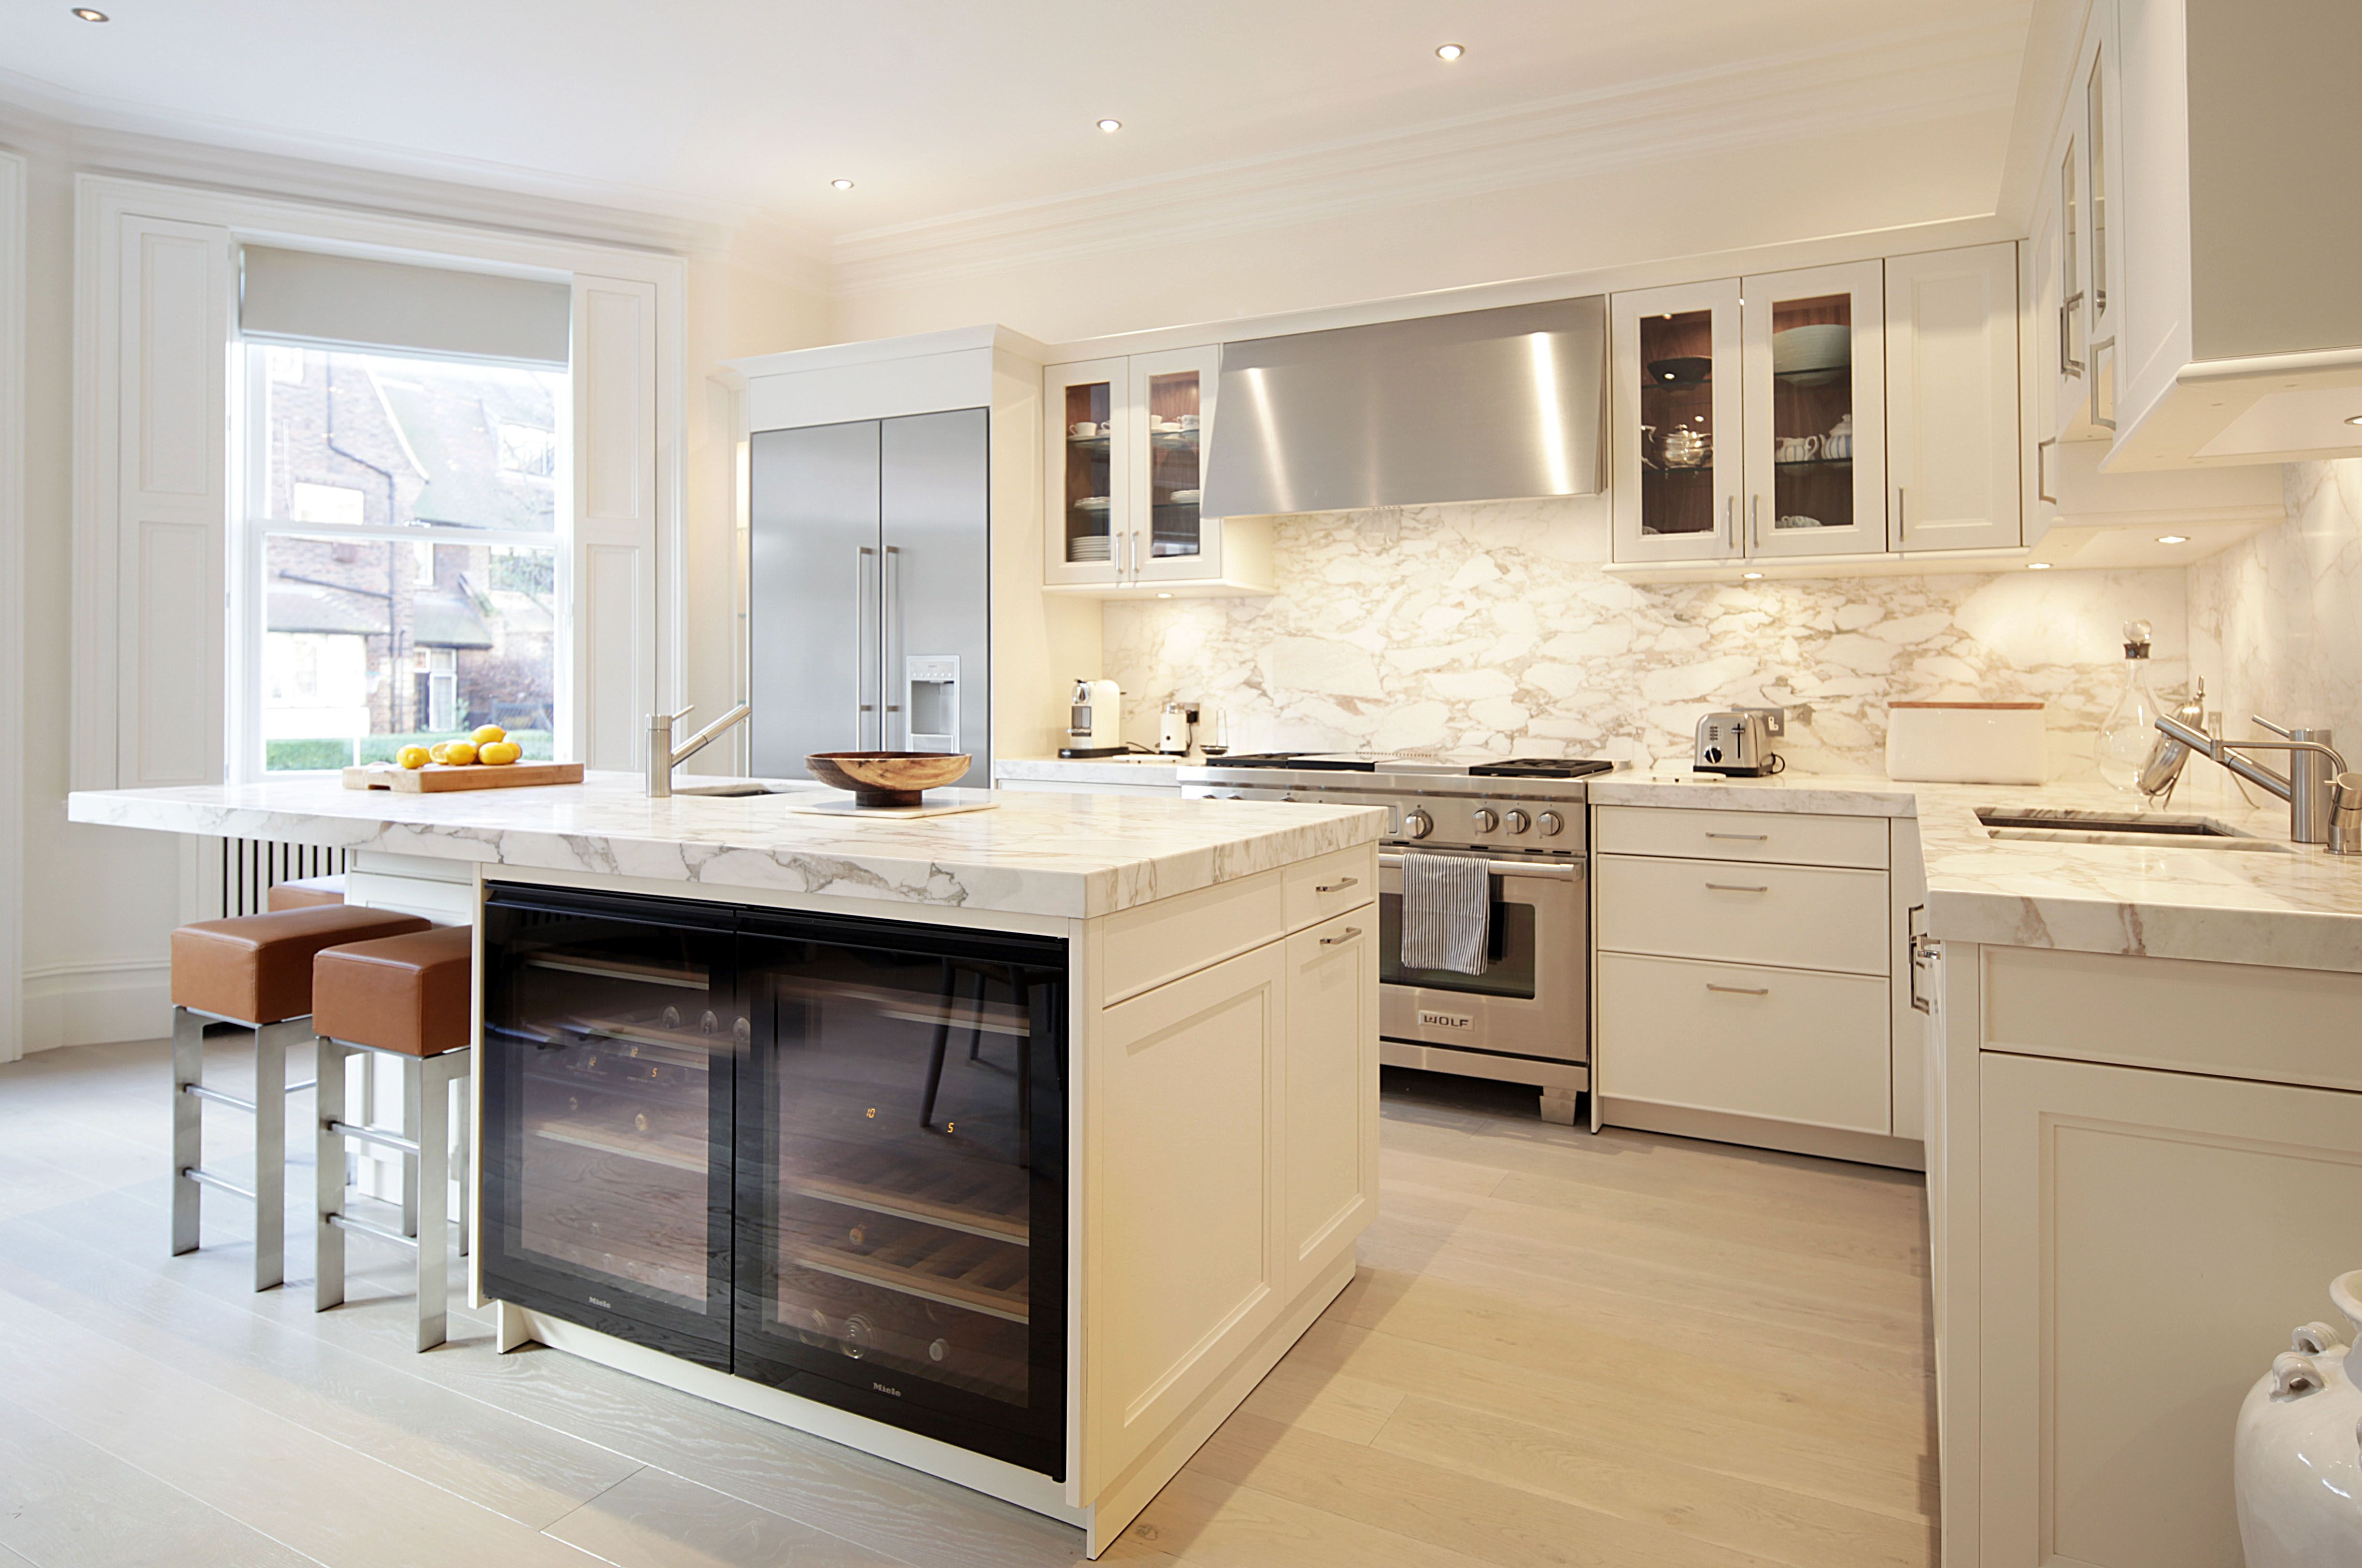 Ormonde Gate Kitchen Design Thurloe White Bespoke Cabinetry - Glass ...